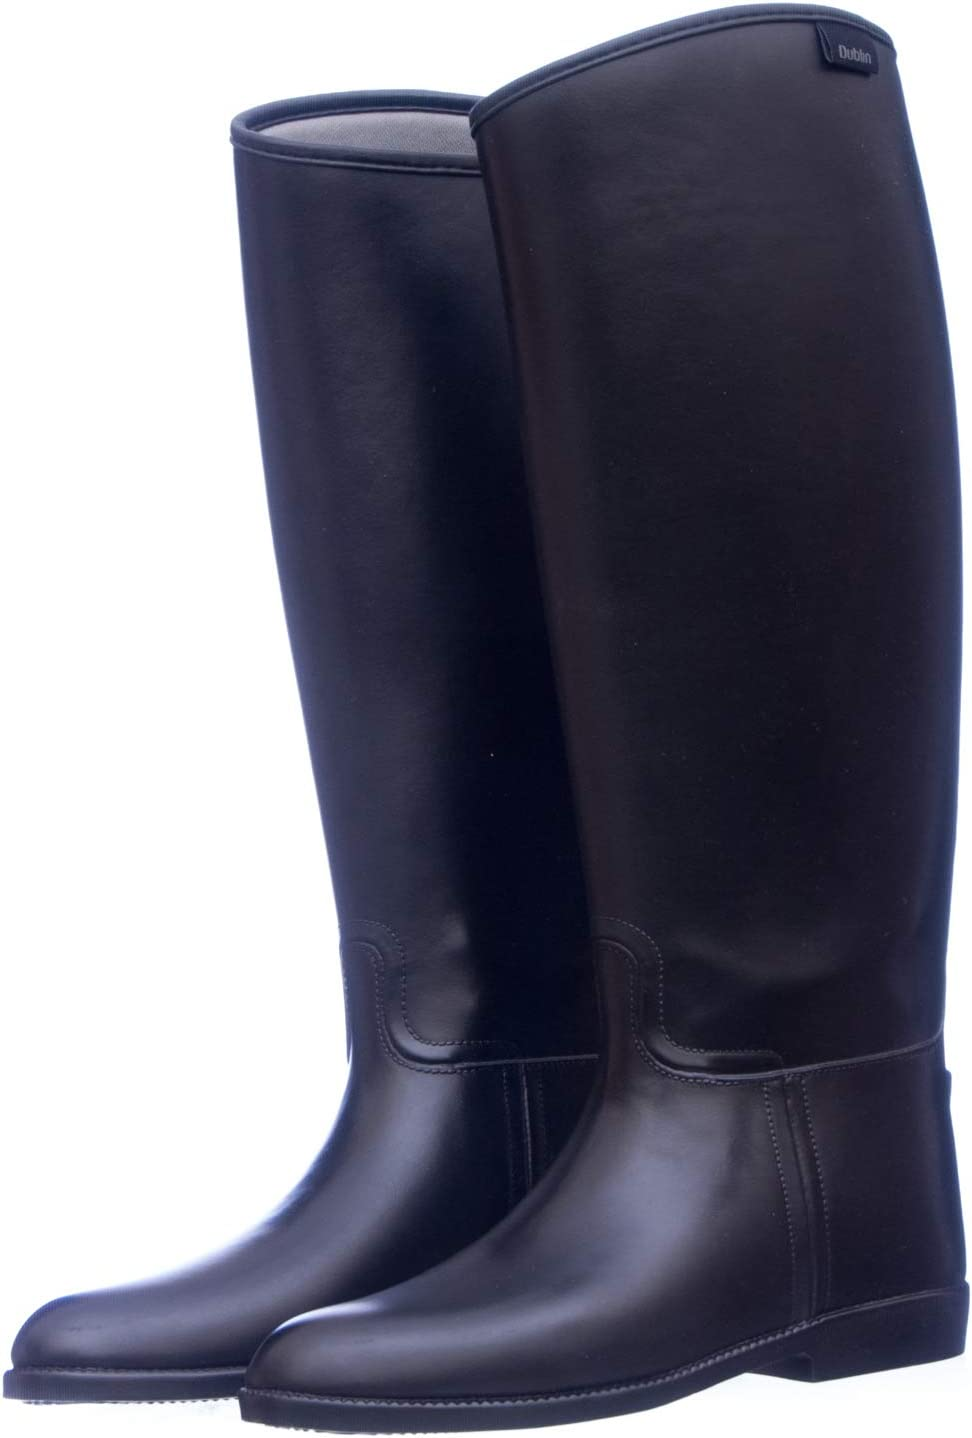 Bombing free shipping Max 44% OFF Dublin Ladies Universal Boots Tall